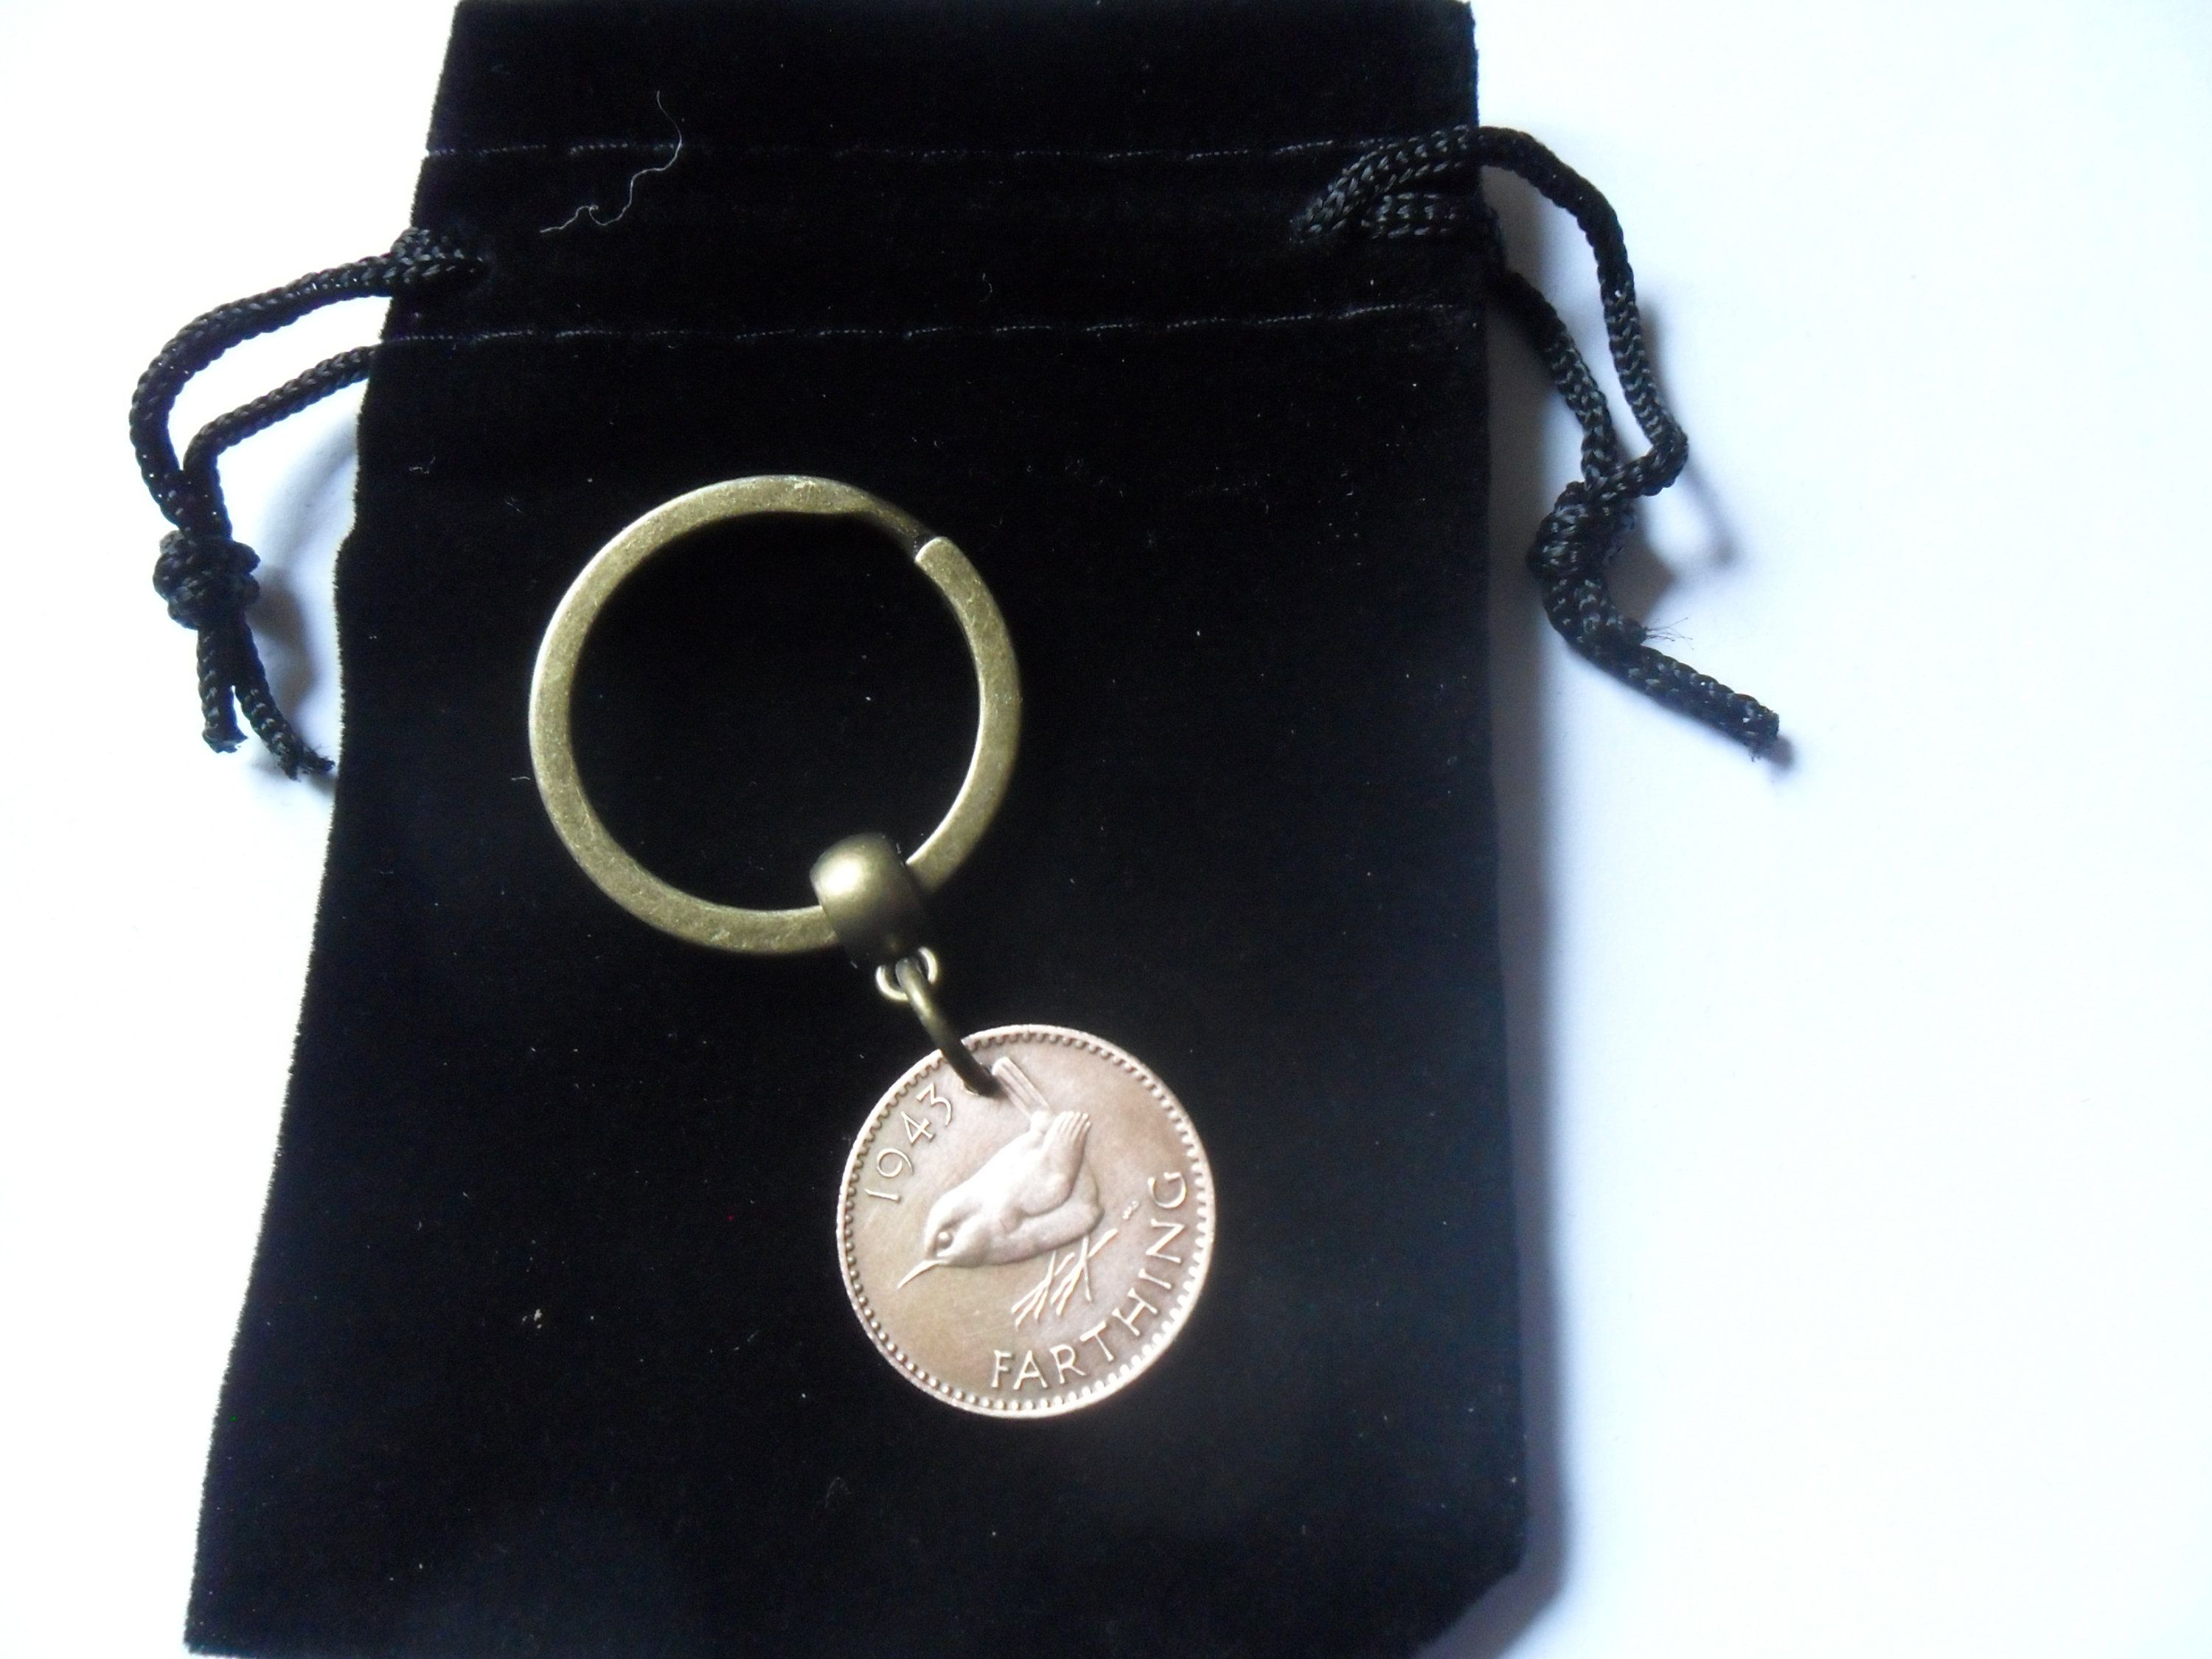 75th Birthday Present Gift 1943 Farthing British Bird Coin Keyfob Unusual For A Man Woman By Staffscoins On Etsy